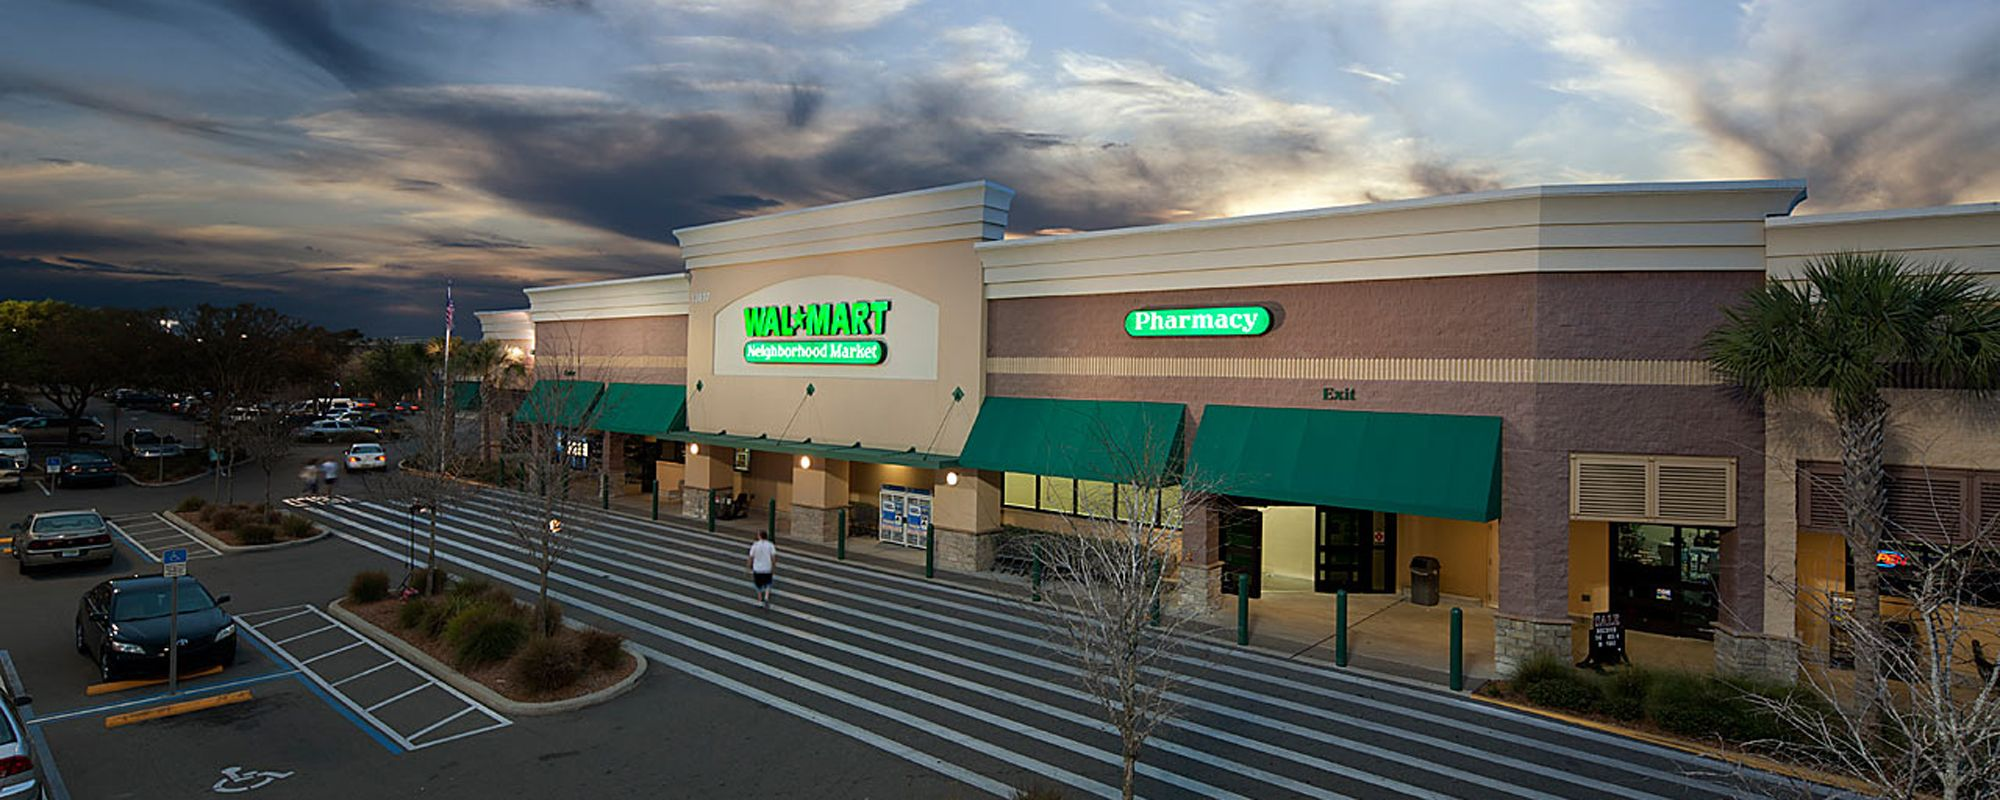 Barclay Square Shopping Center